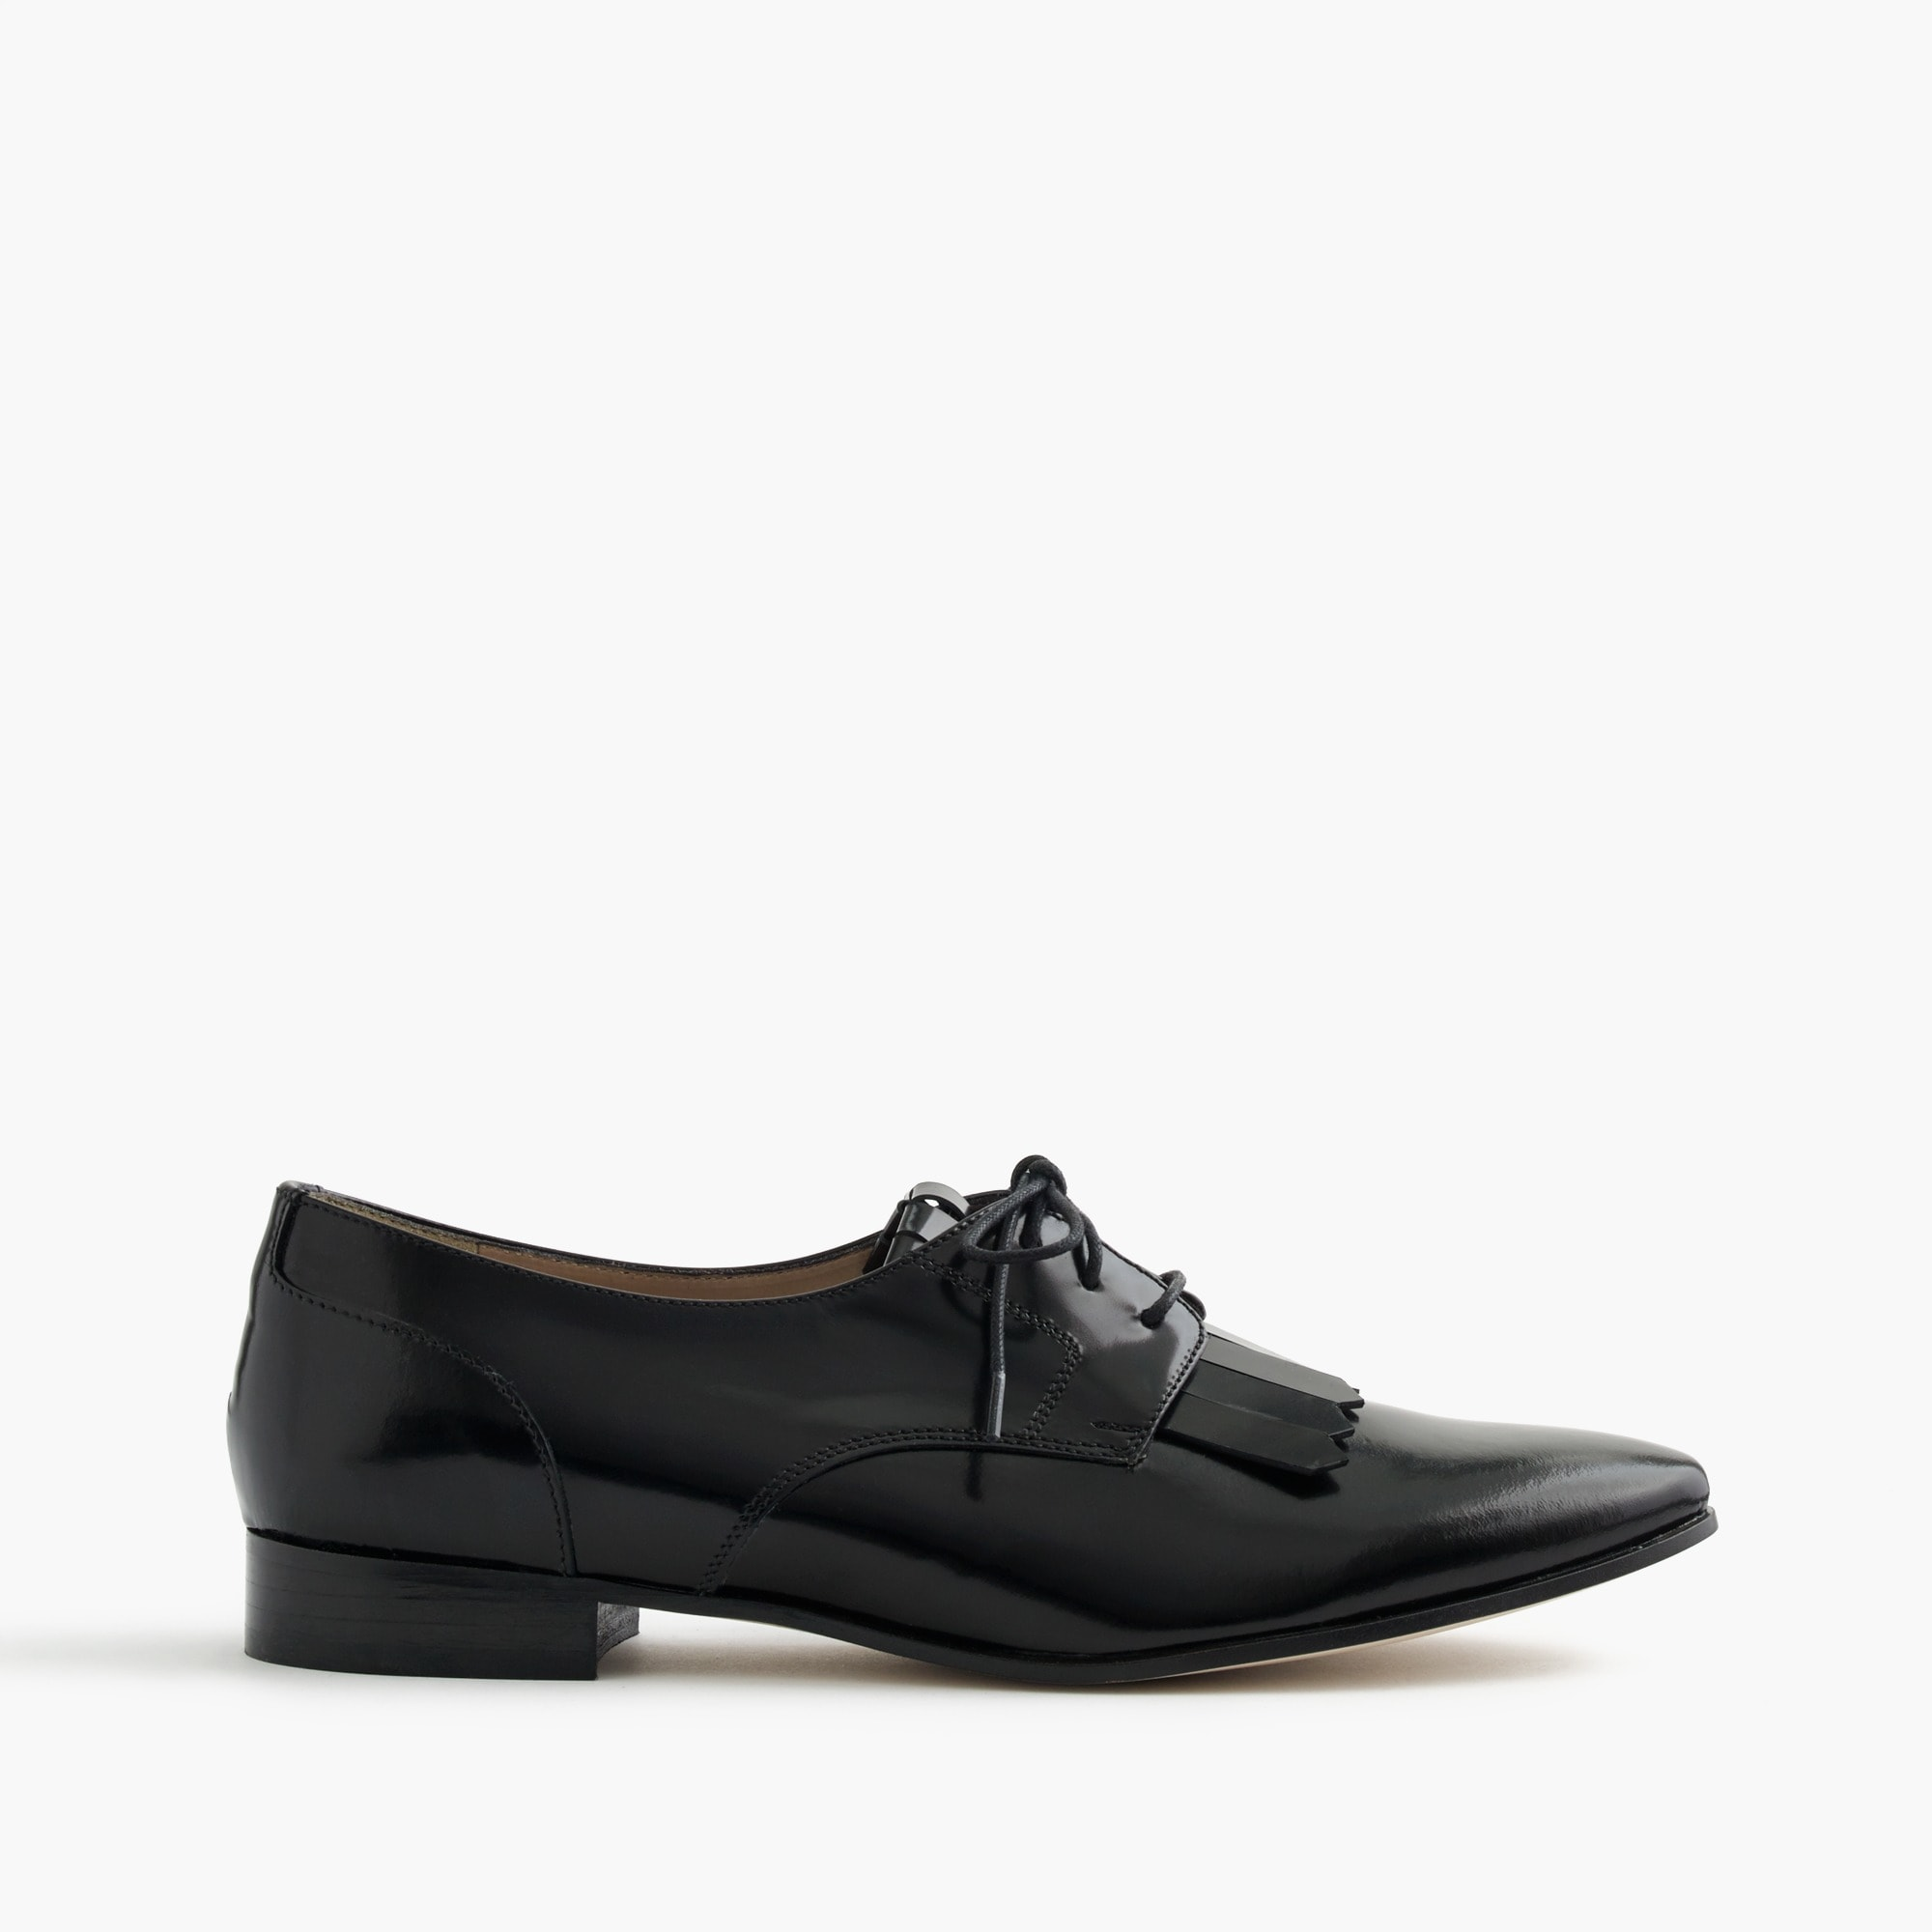 leather oxfords with fringe : women loafers & oxfords